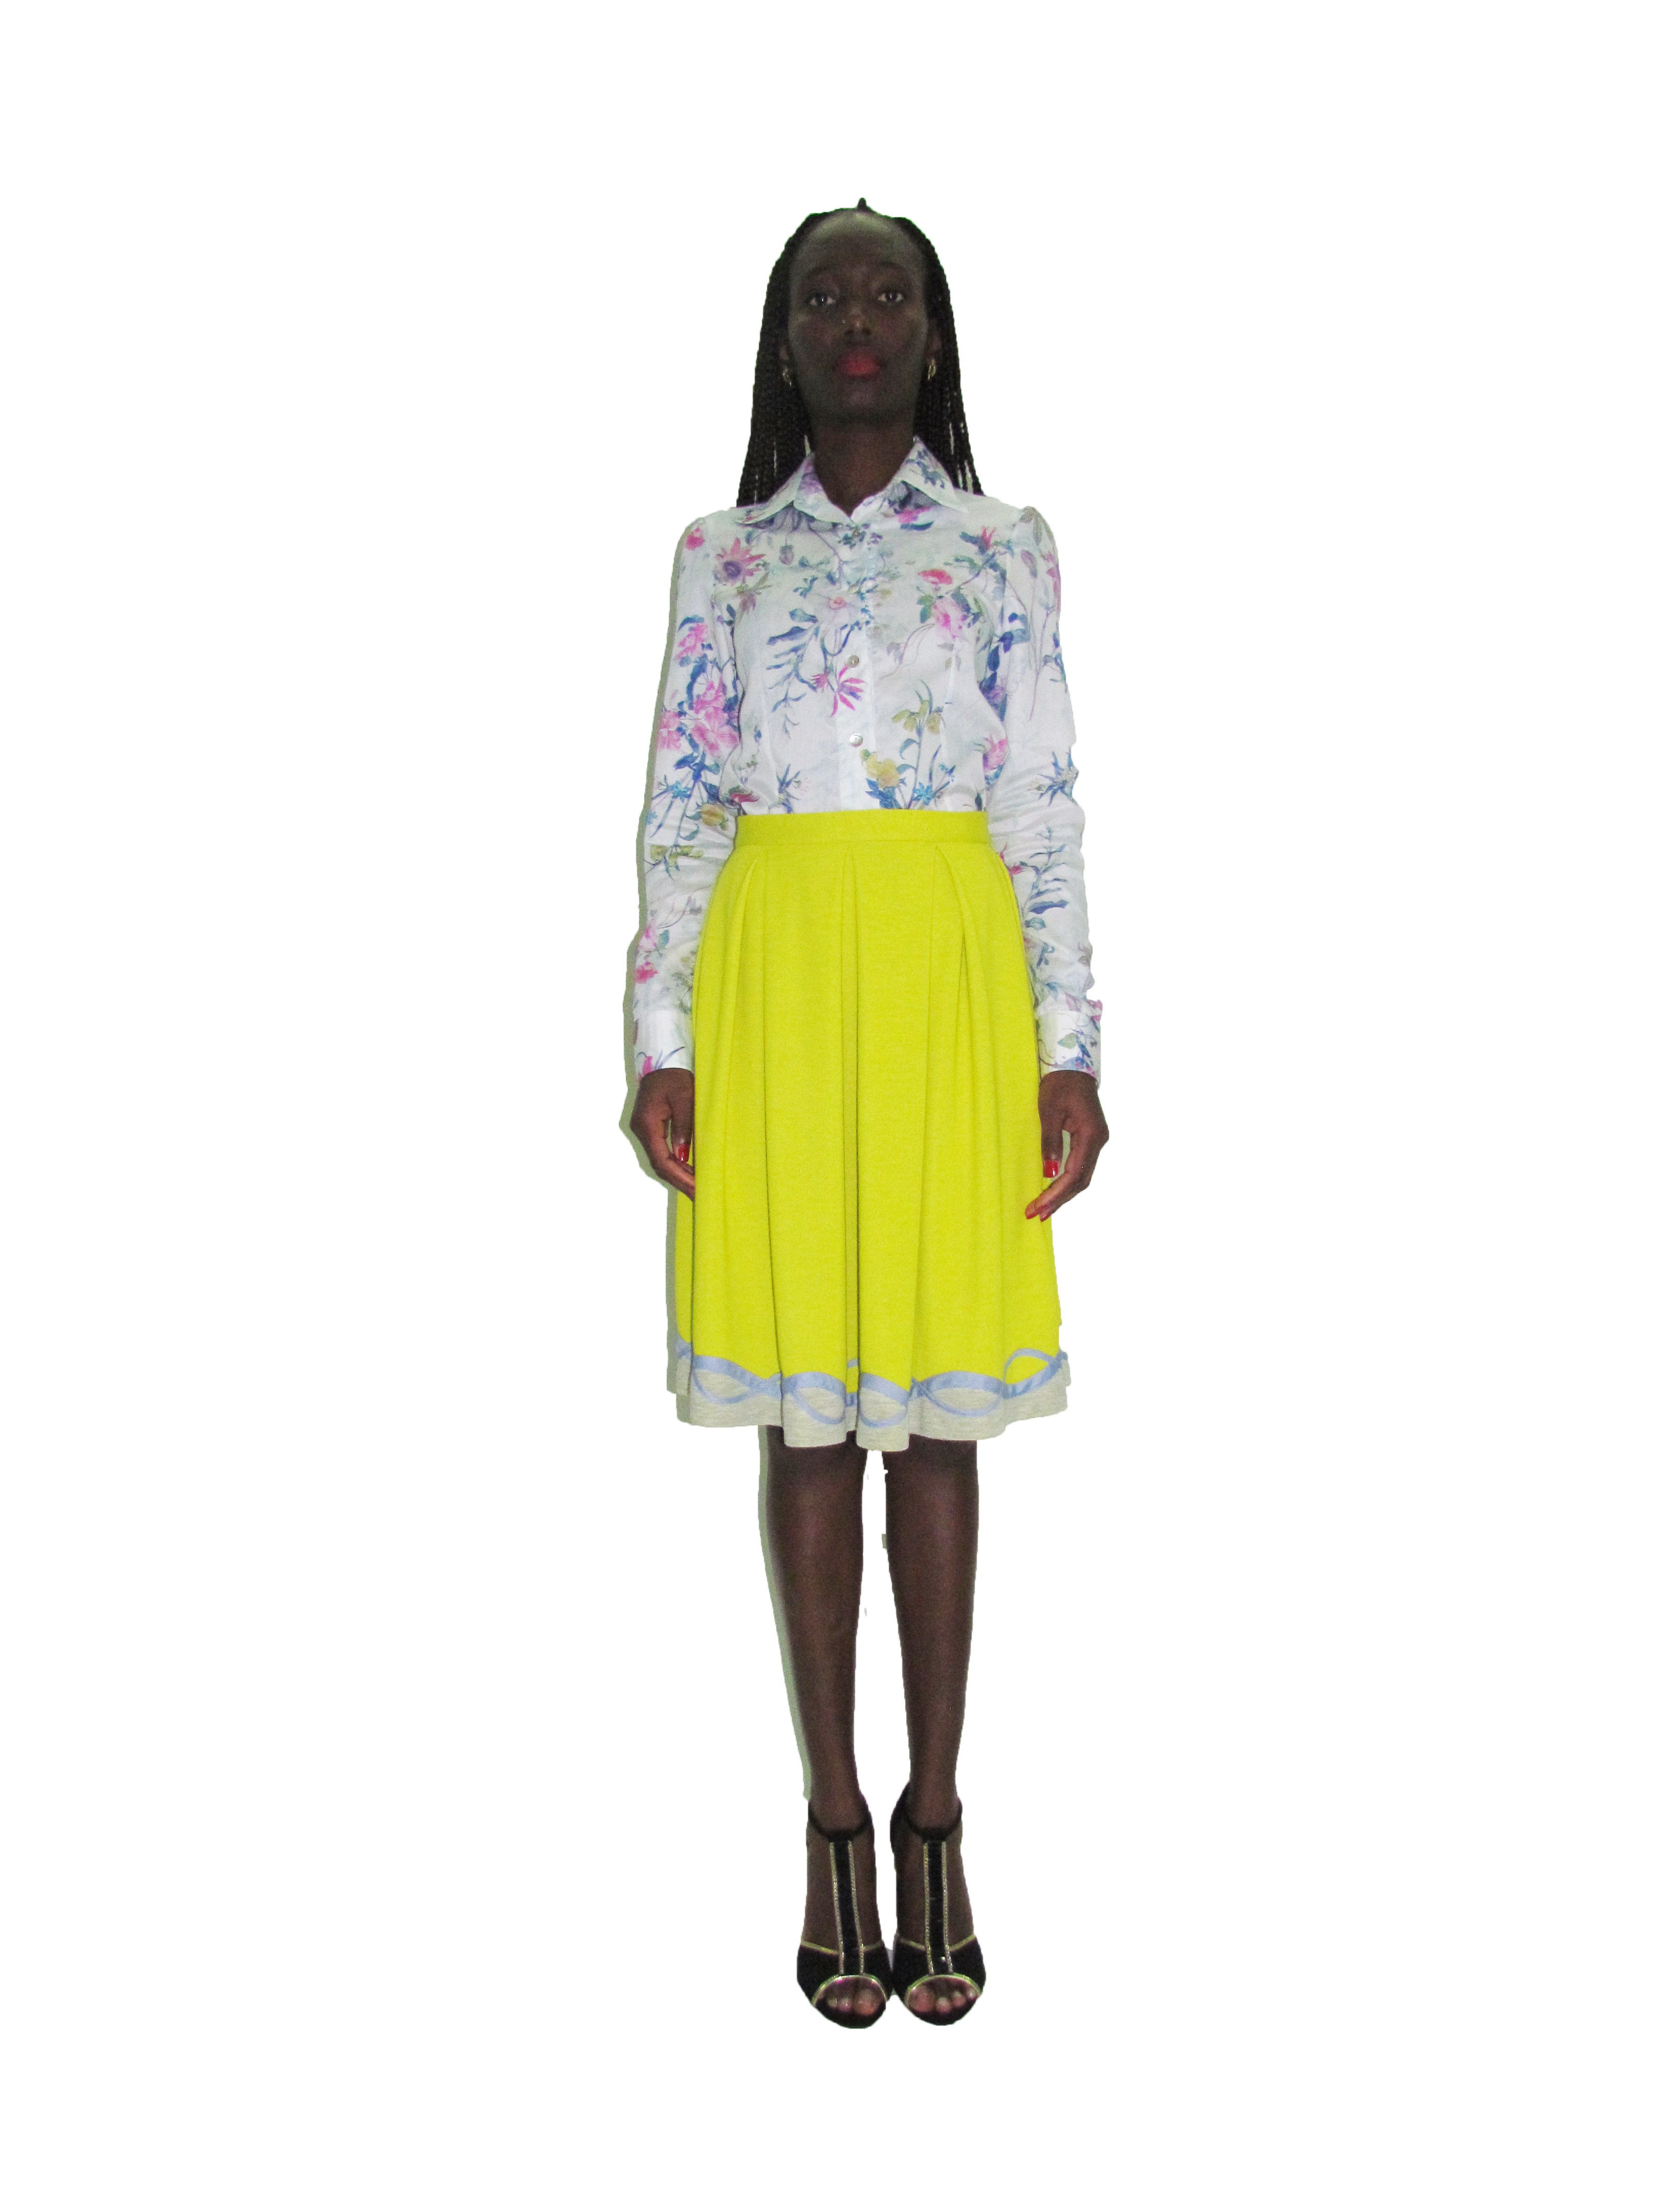 SP 1721 - Floral fitted Shirt | SP 1722 - Pleated Skirt with Tapped Hem